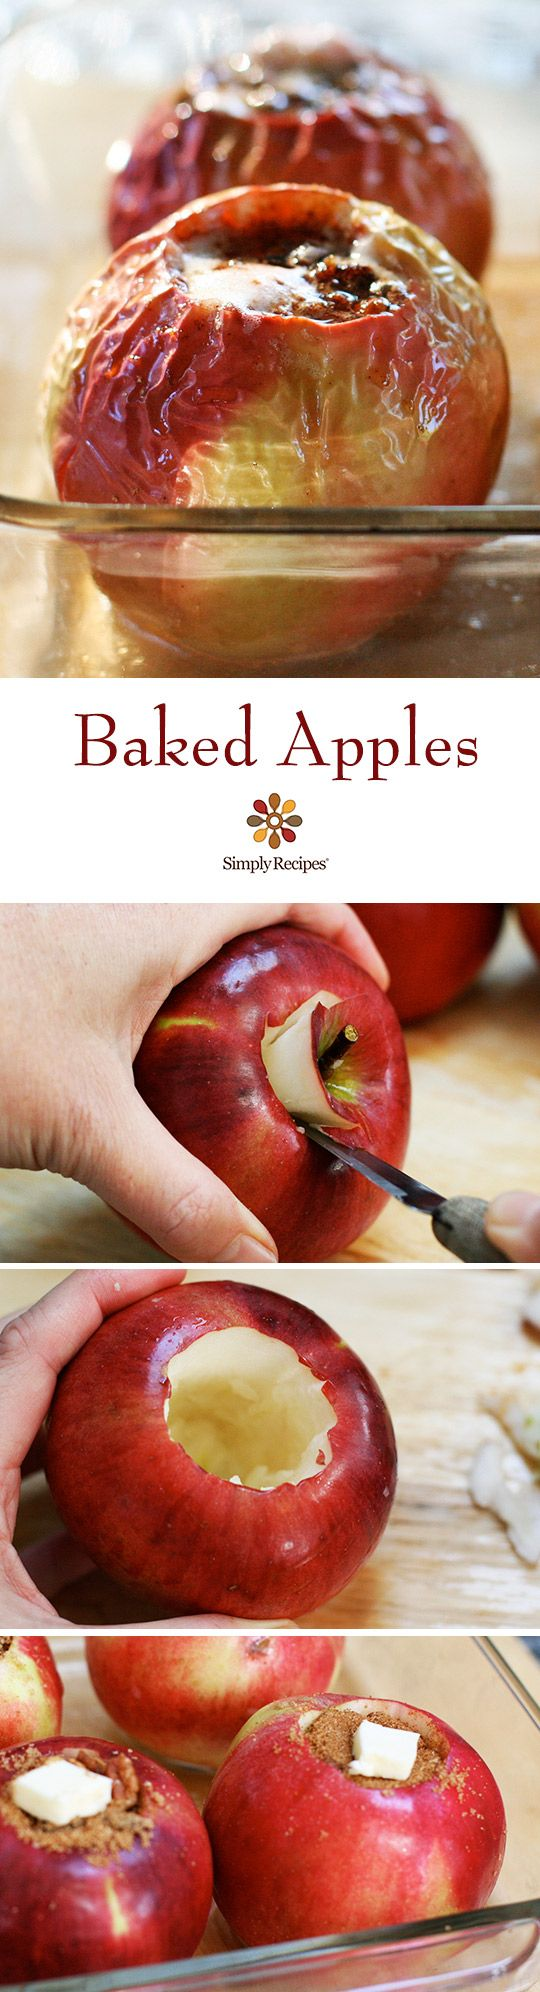 Classic baked apples filled with pecans, cinnamon, raisins, butter, and brown sugar. ~ SimplyRecipes.com